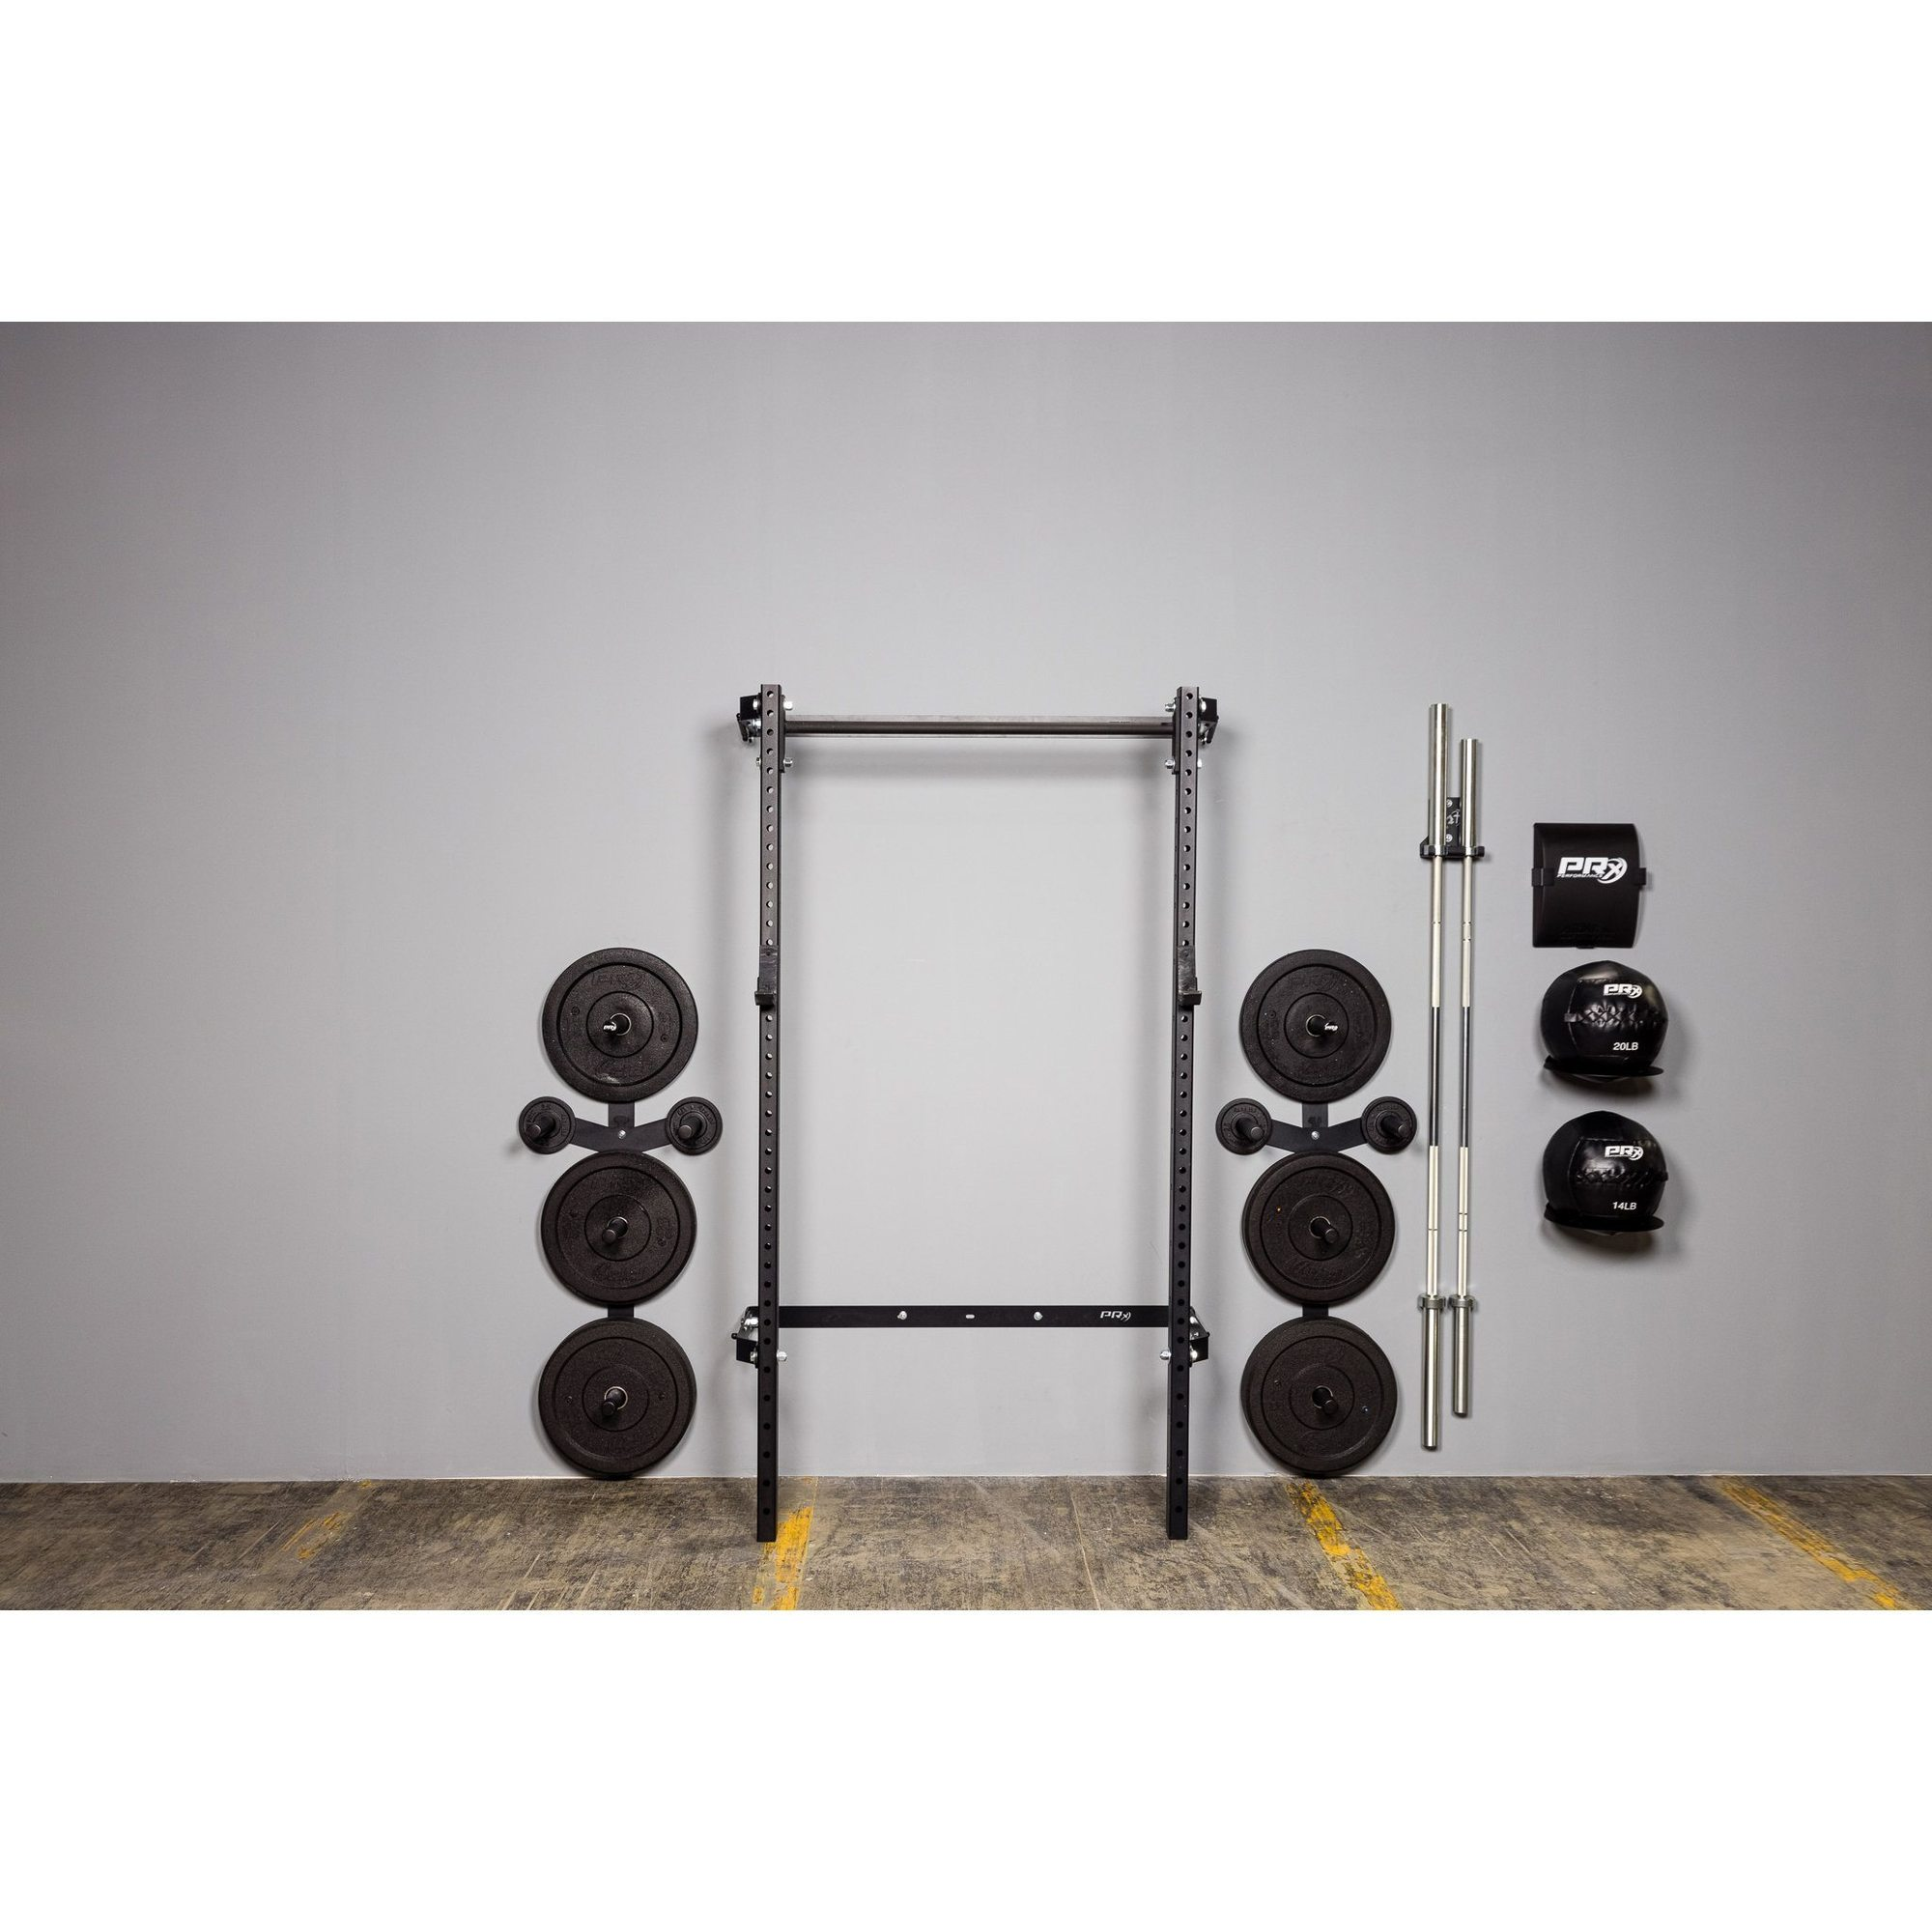 What You Need to Have Requested Your Teachers About Gym Equipment For Home